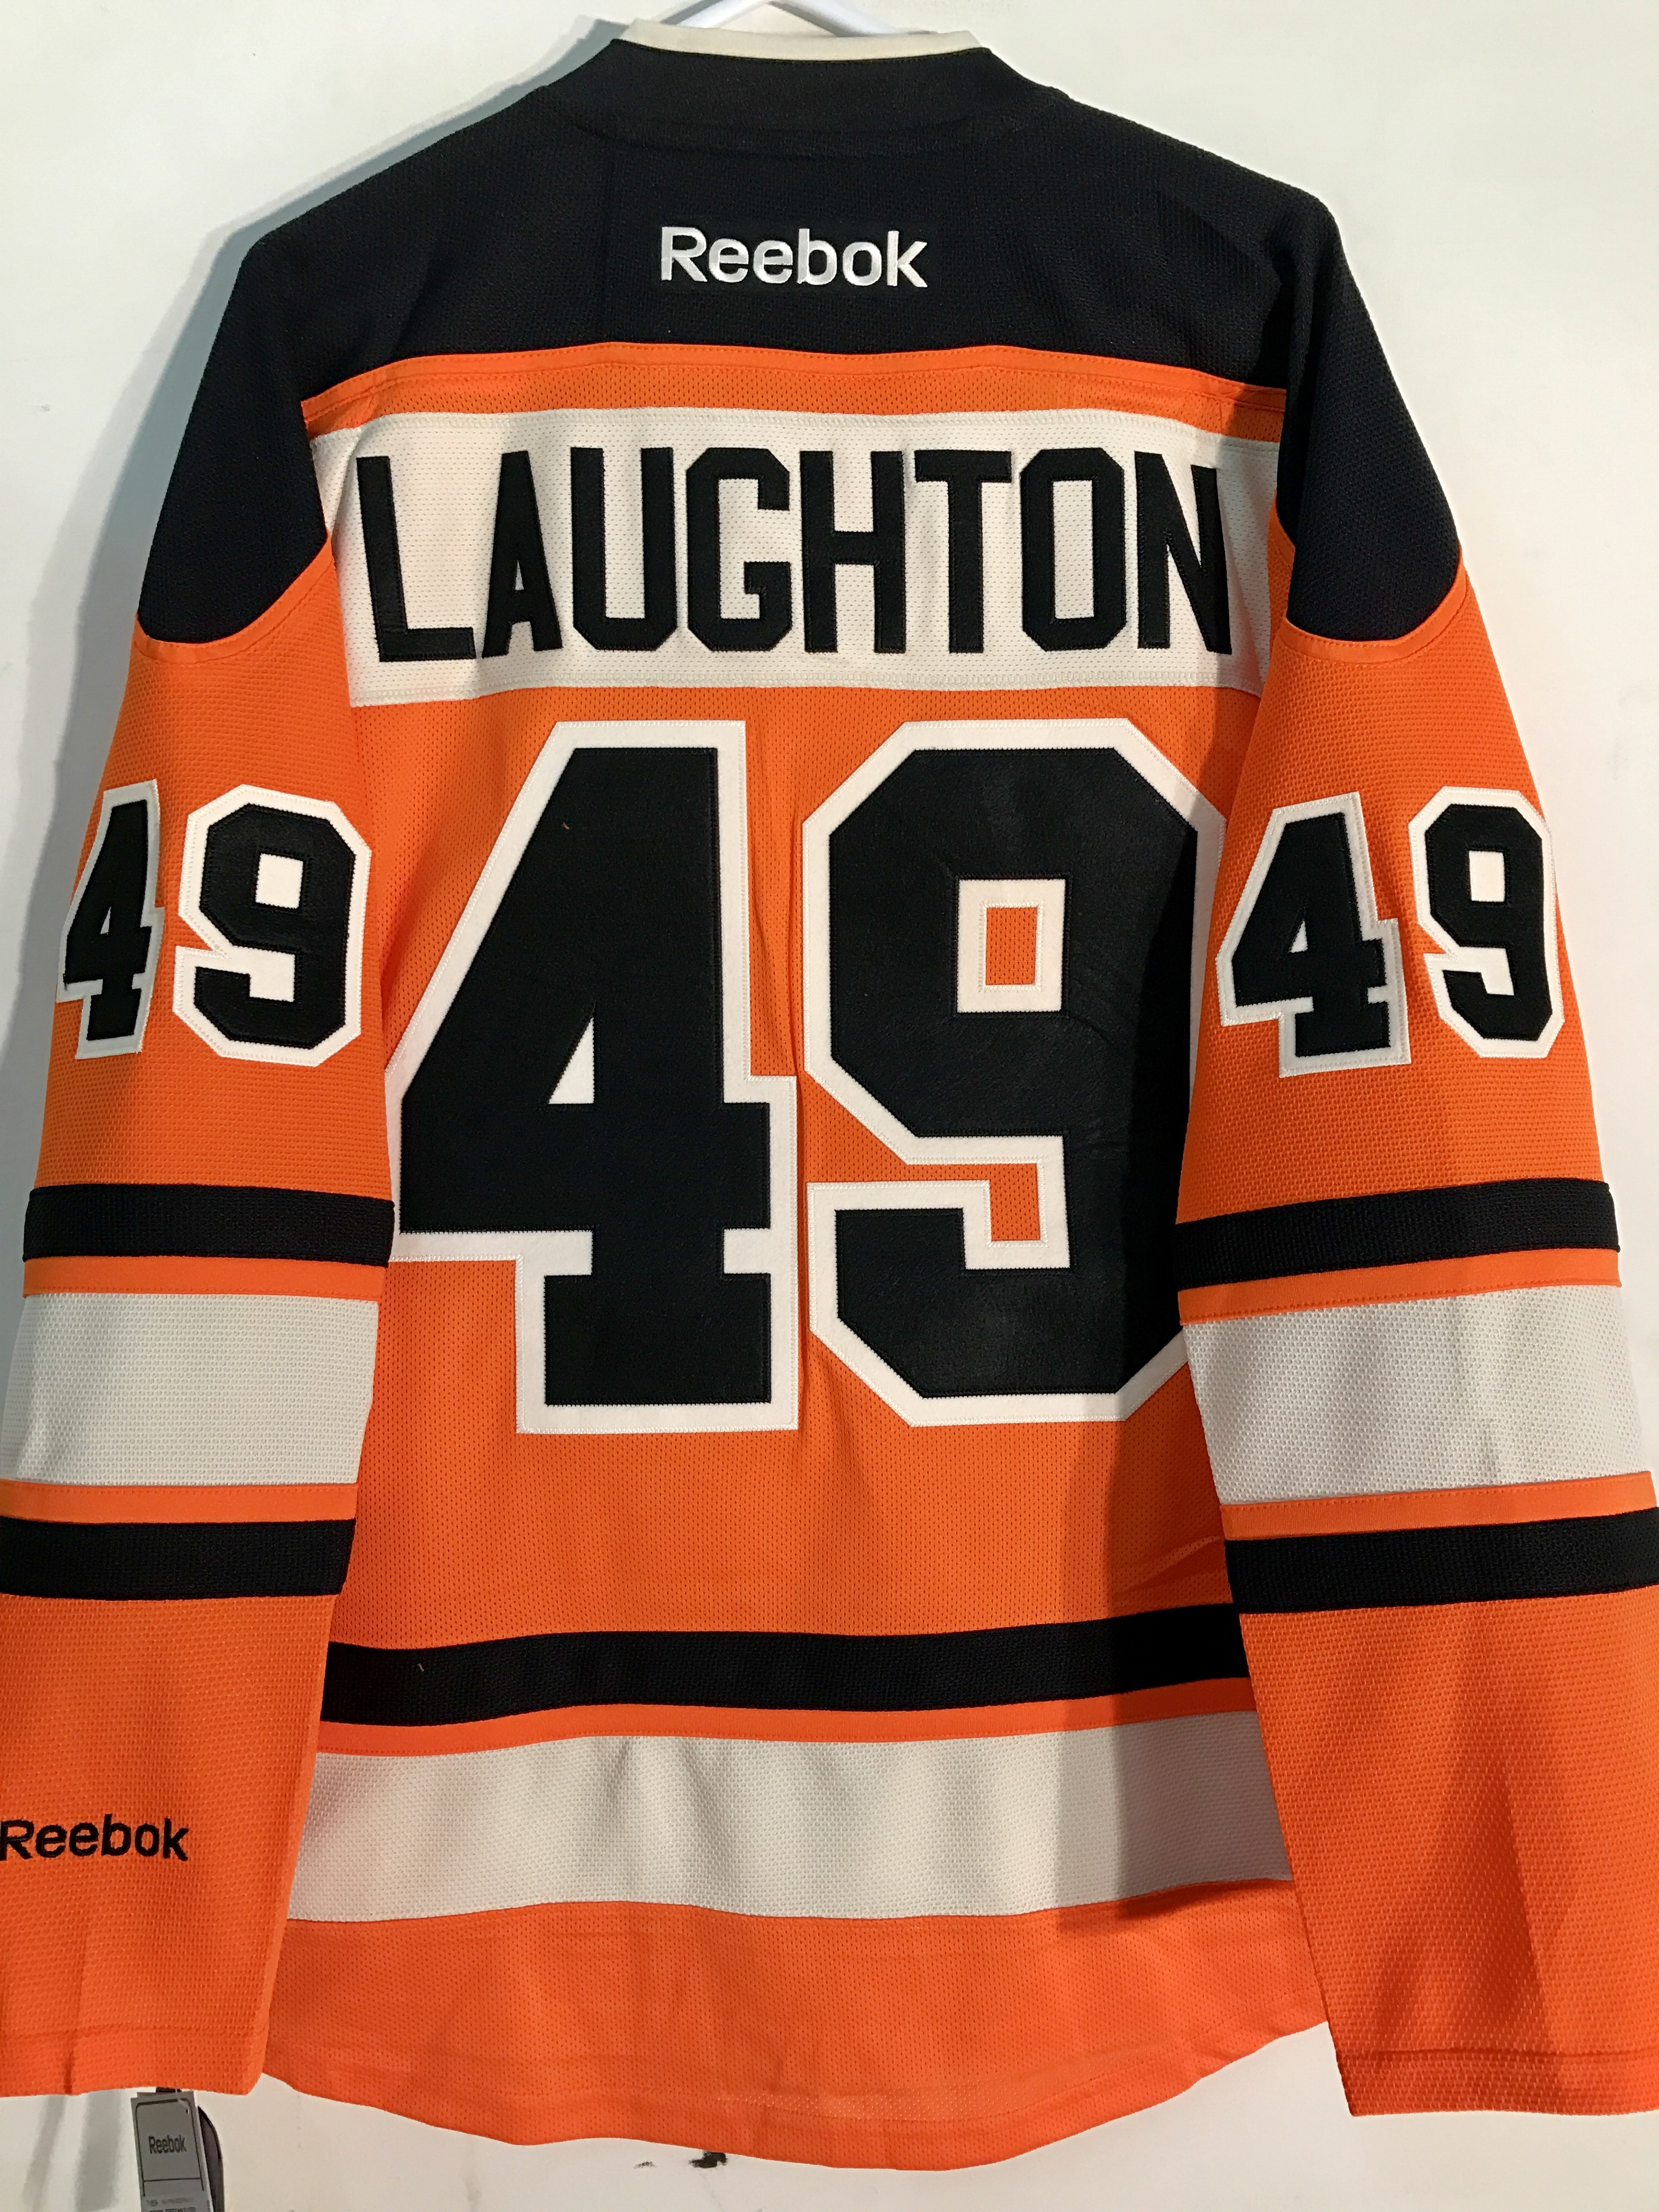 76efa16f7 Reebok Premier NHL Jersey Philadelphia Flyers Scott Laughton Orange ...